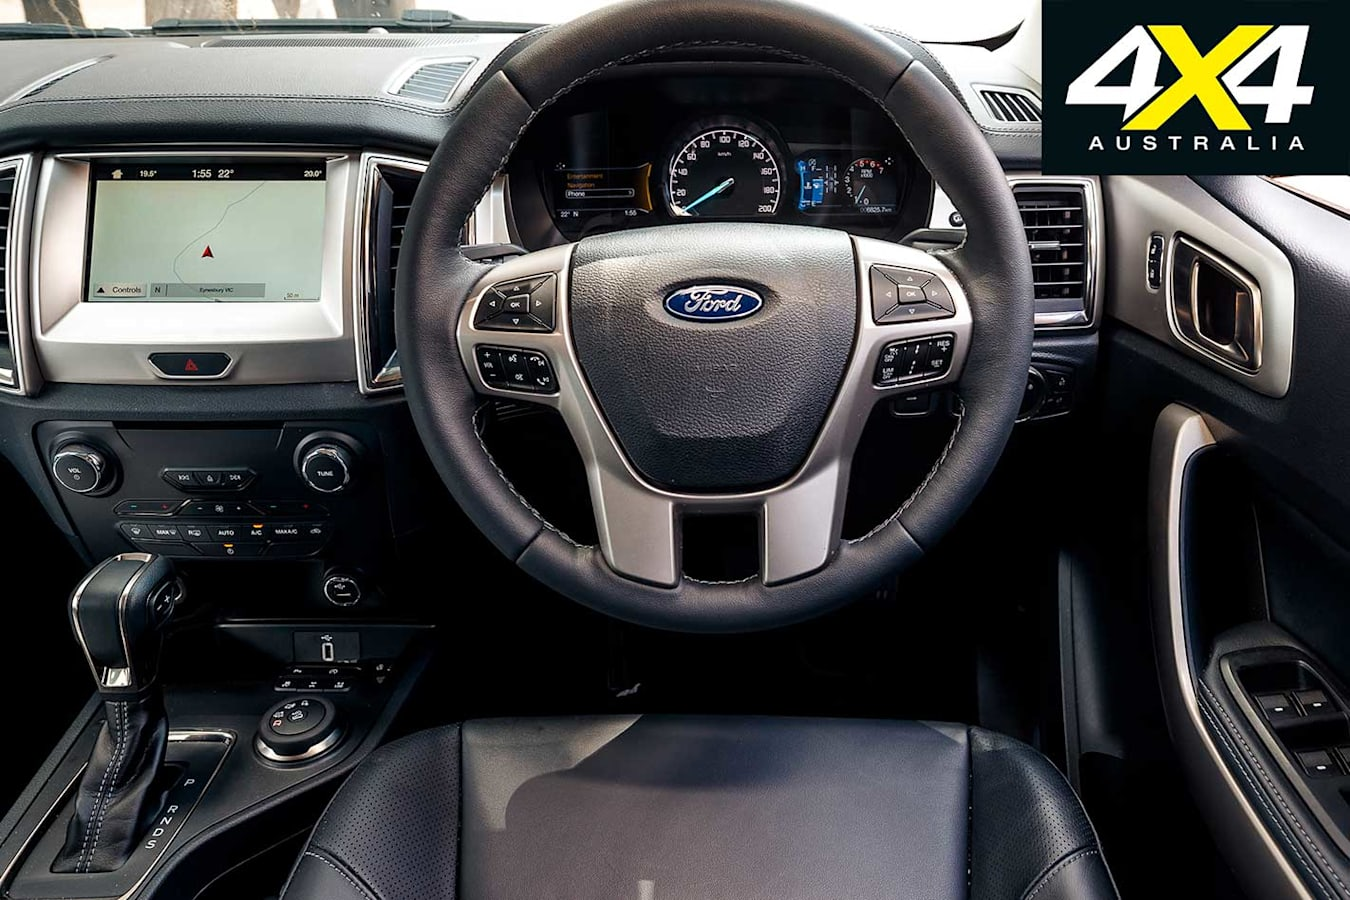 2019 4 X 4 Of The Year Ford Everest Trend Interior Jpg